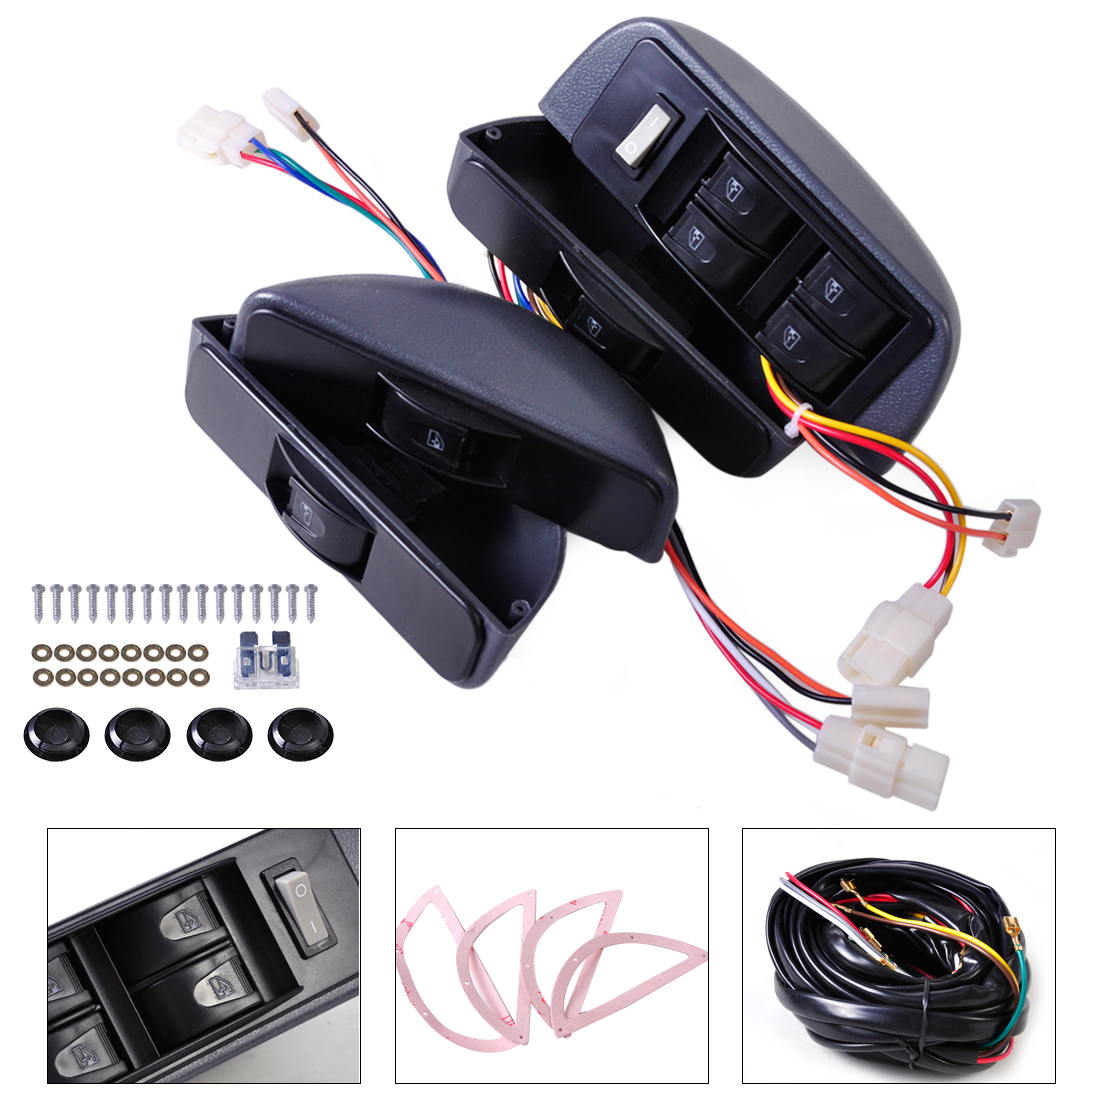 Citall Universal Grey Power Window Lock Kit 4 Rocker Switch 12v Fit Volkswagen Golf Wiring Harness For Car Doors Vw Polo Ford Hyundai Nissan Toyota In Switches Relays From